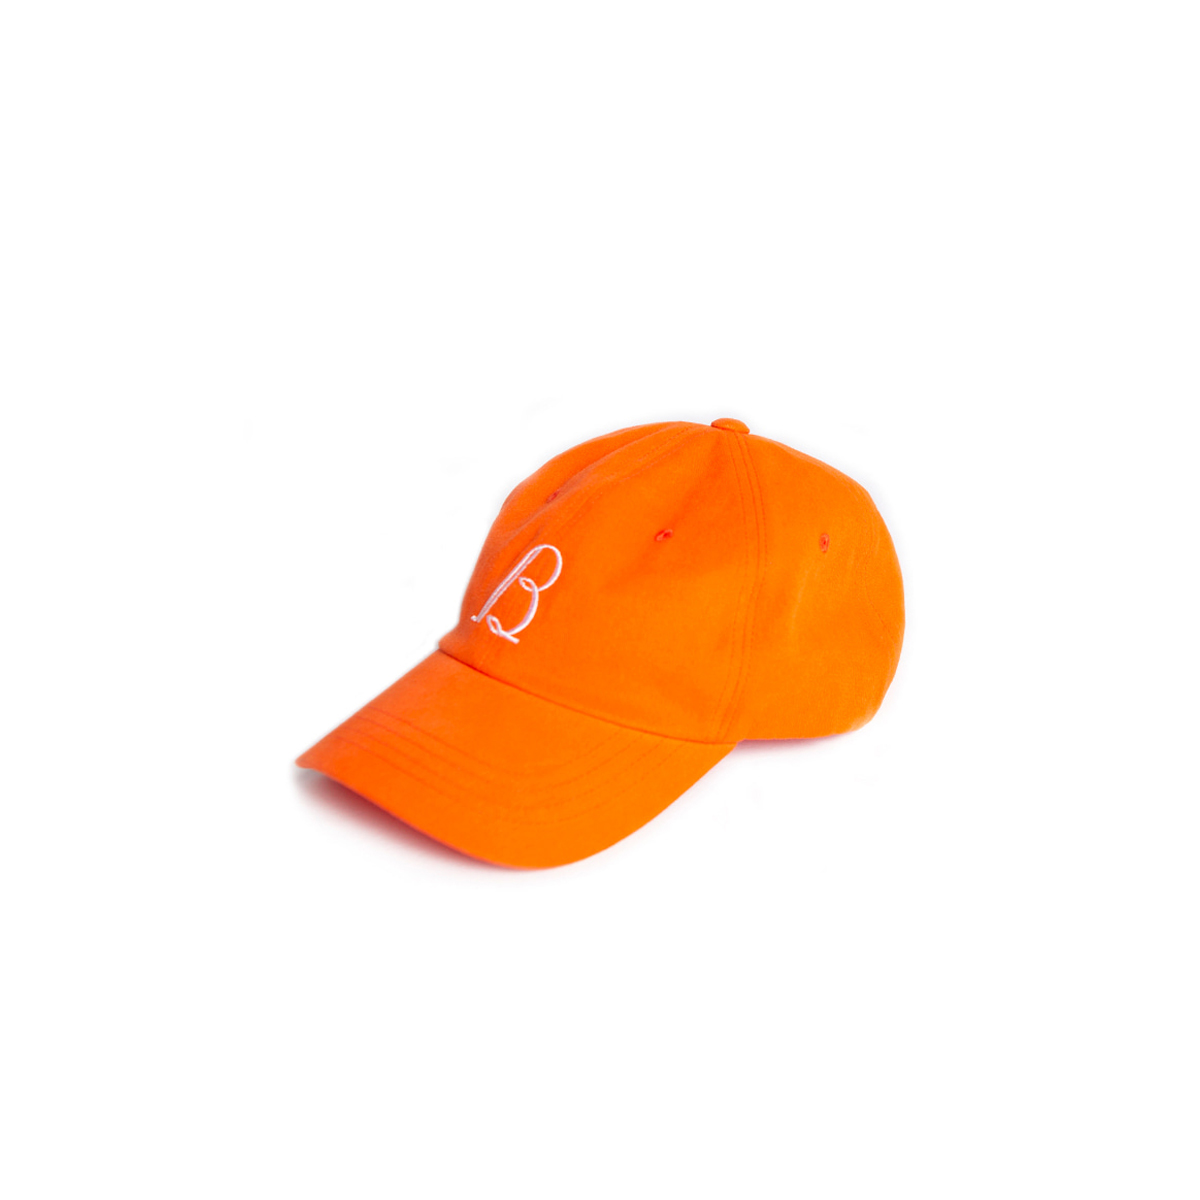 [BROWNYARD] VINTAGE BASEBALL CAP 'ORANGE'